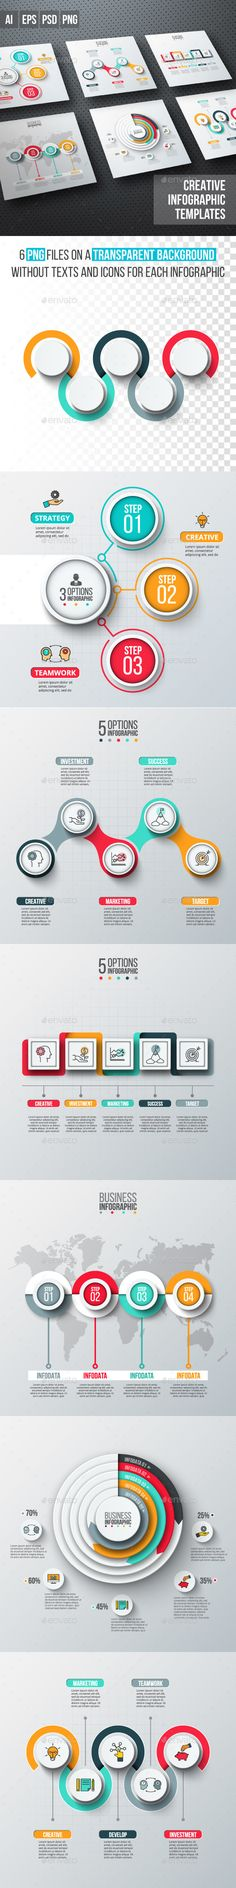 Business infographic diagrams v.12Abstract infographics number options template. Vector illustration. Can be used for workflow layout, diagram, business step options, banner, web design You can use this infographic template to visualize your data in a different ways such as: presentations, posters, brochures, business cards, flyers, magazines etc. MAIN FEATURES: - Well organized - Fully layered - 100% Vector ZIP PACKAGE INCLUDES: - 6 EPS10 files - 6 AI CS2 files with editable text - 6 PSD la